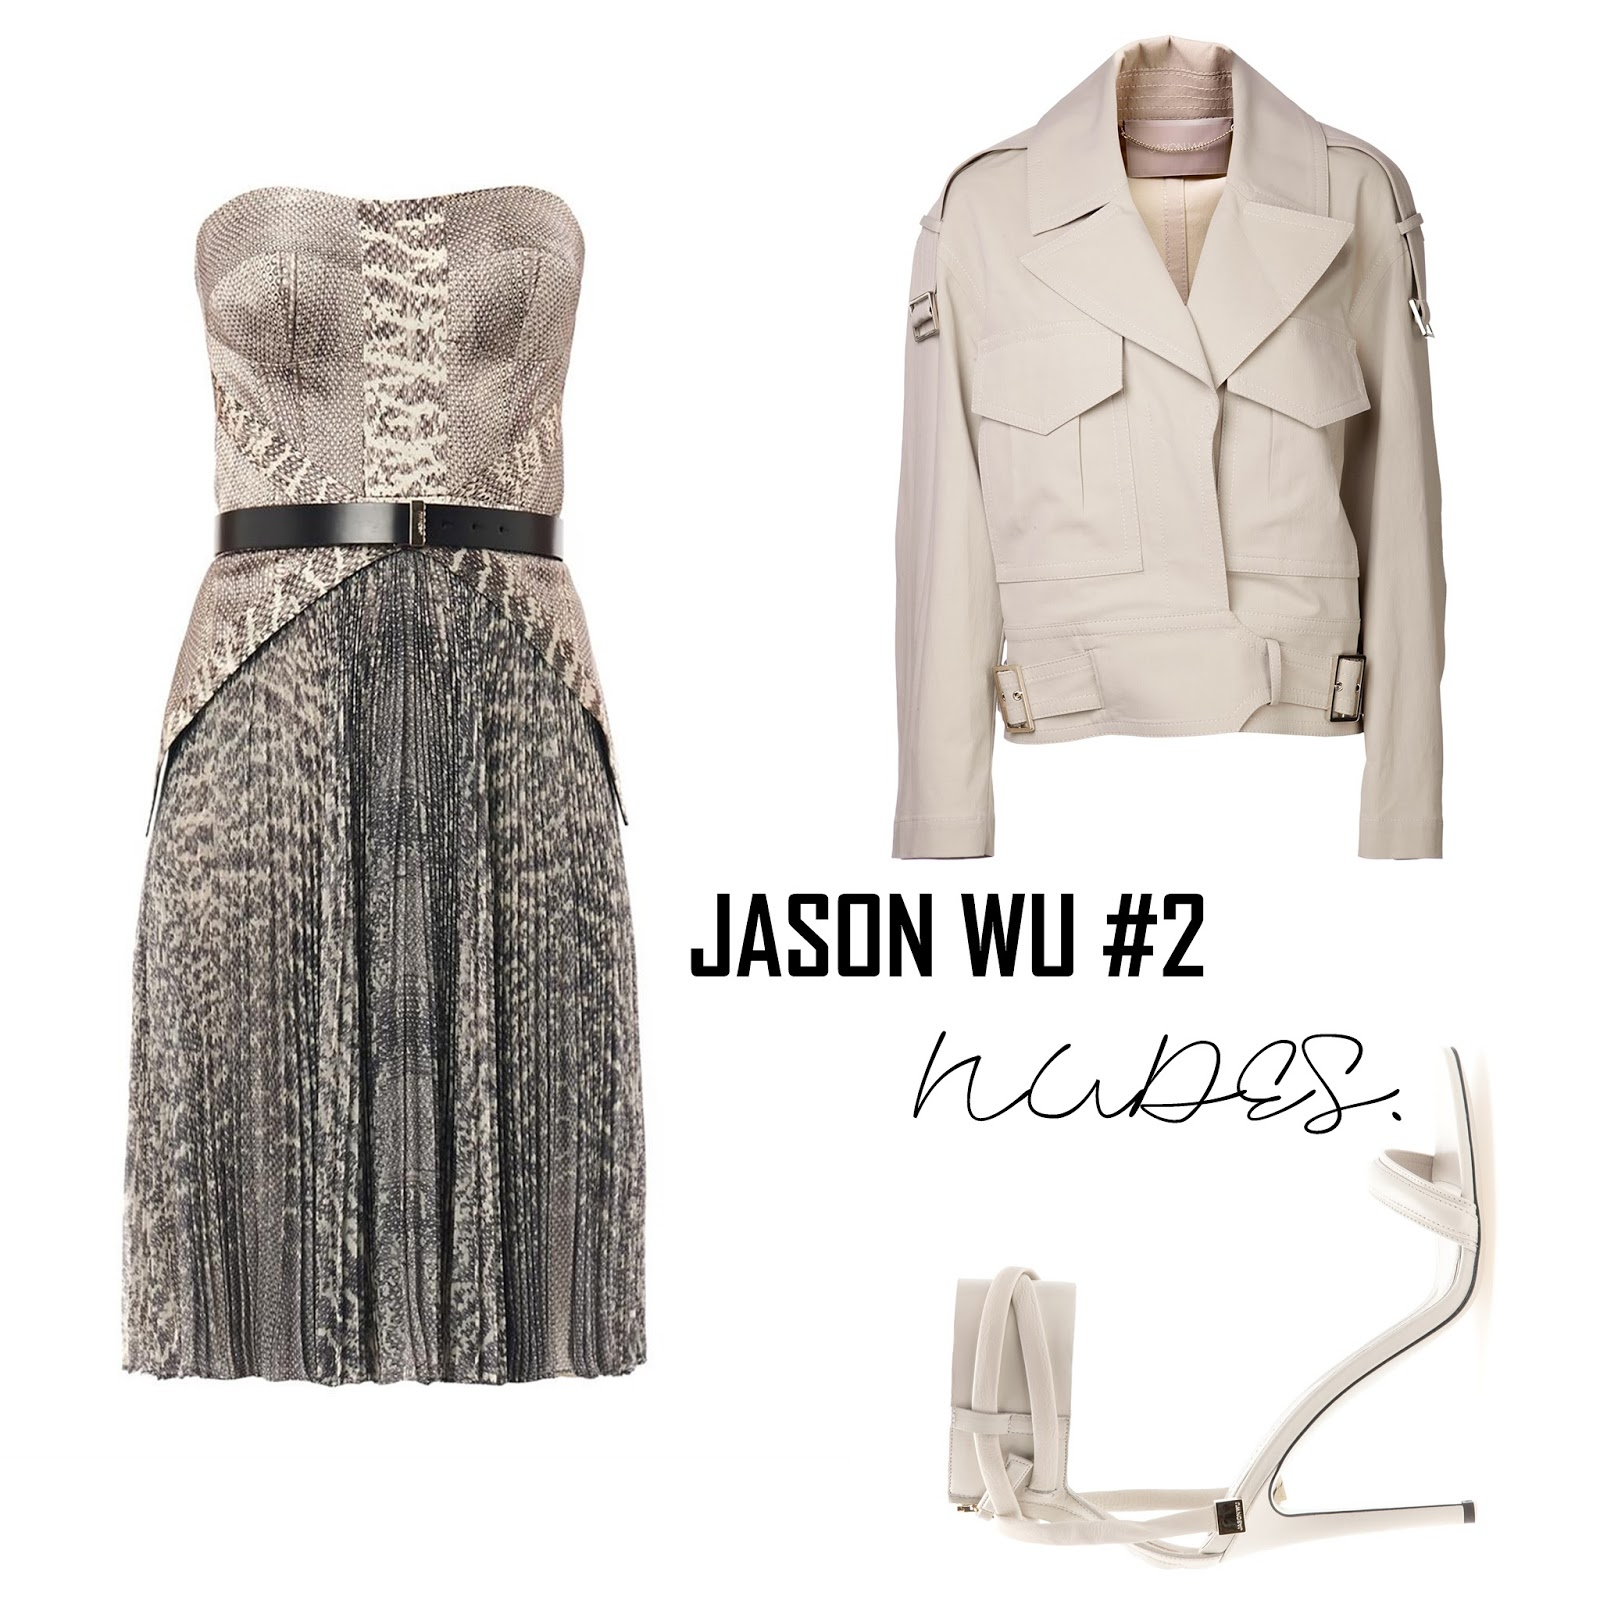 jason wu clothes, outfit, snake print, nudes, styling, blogger